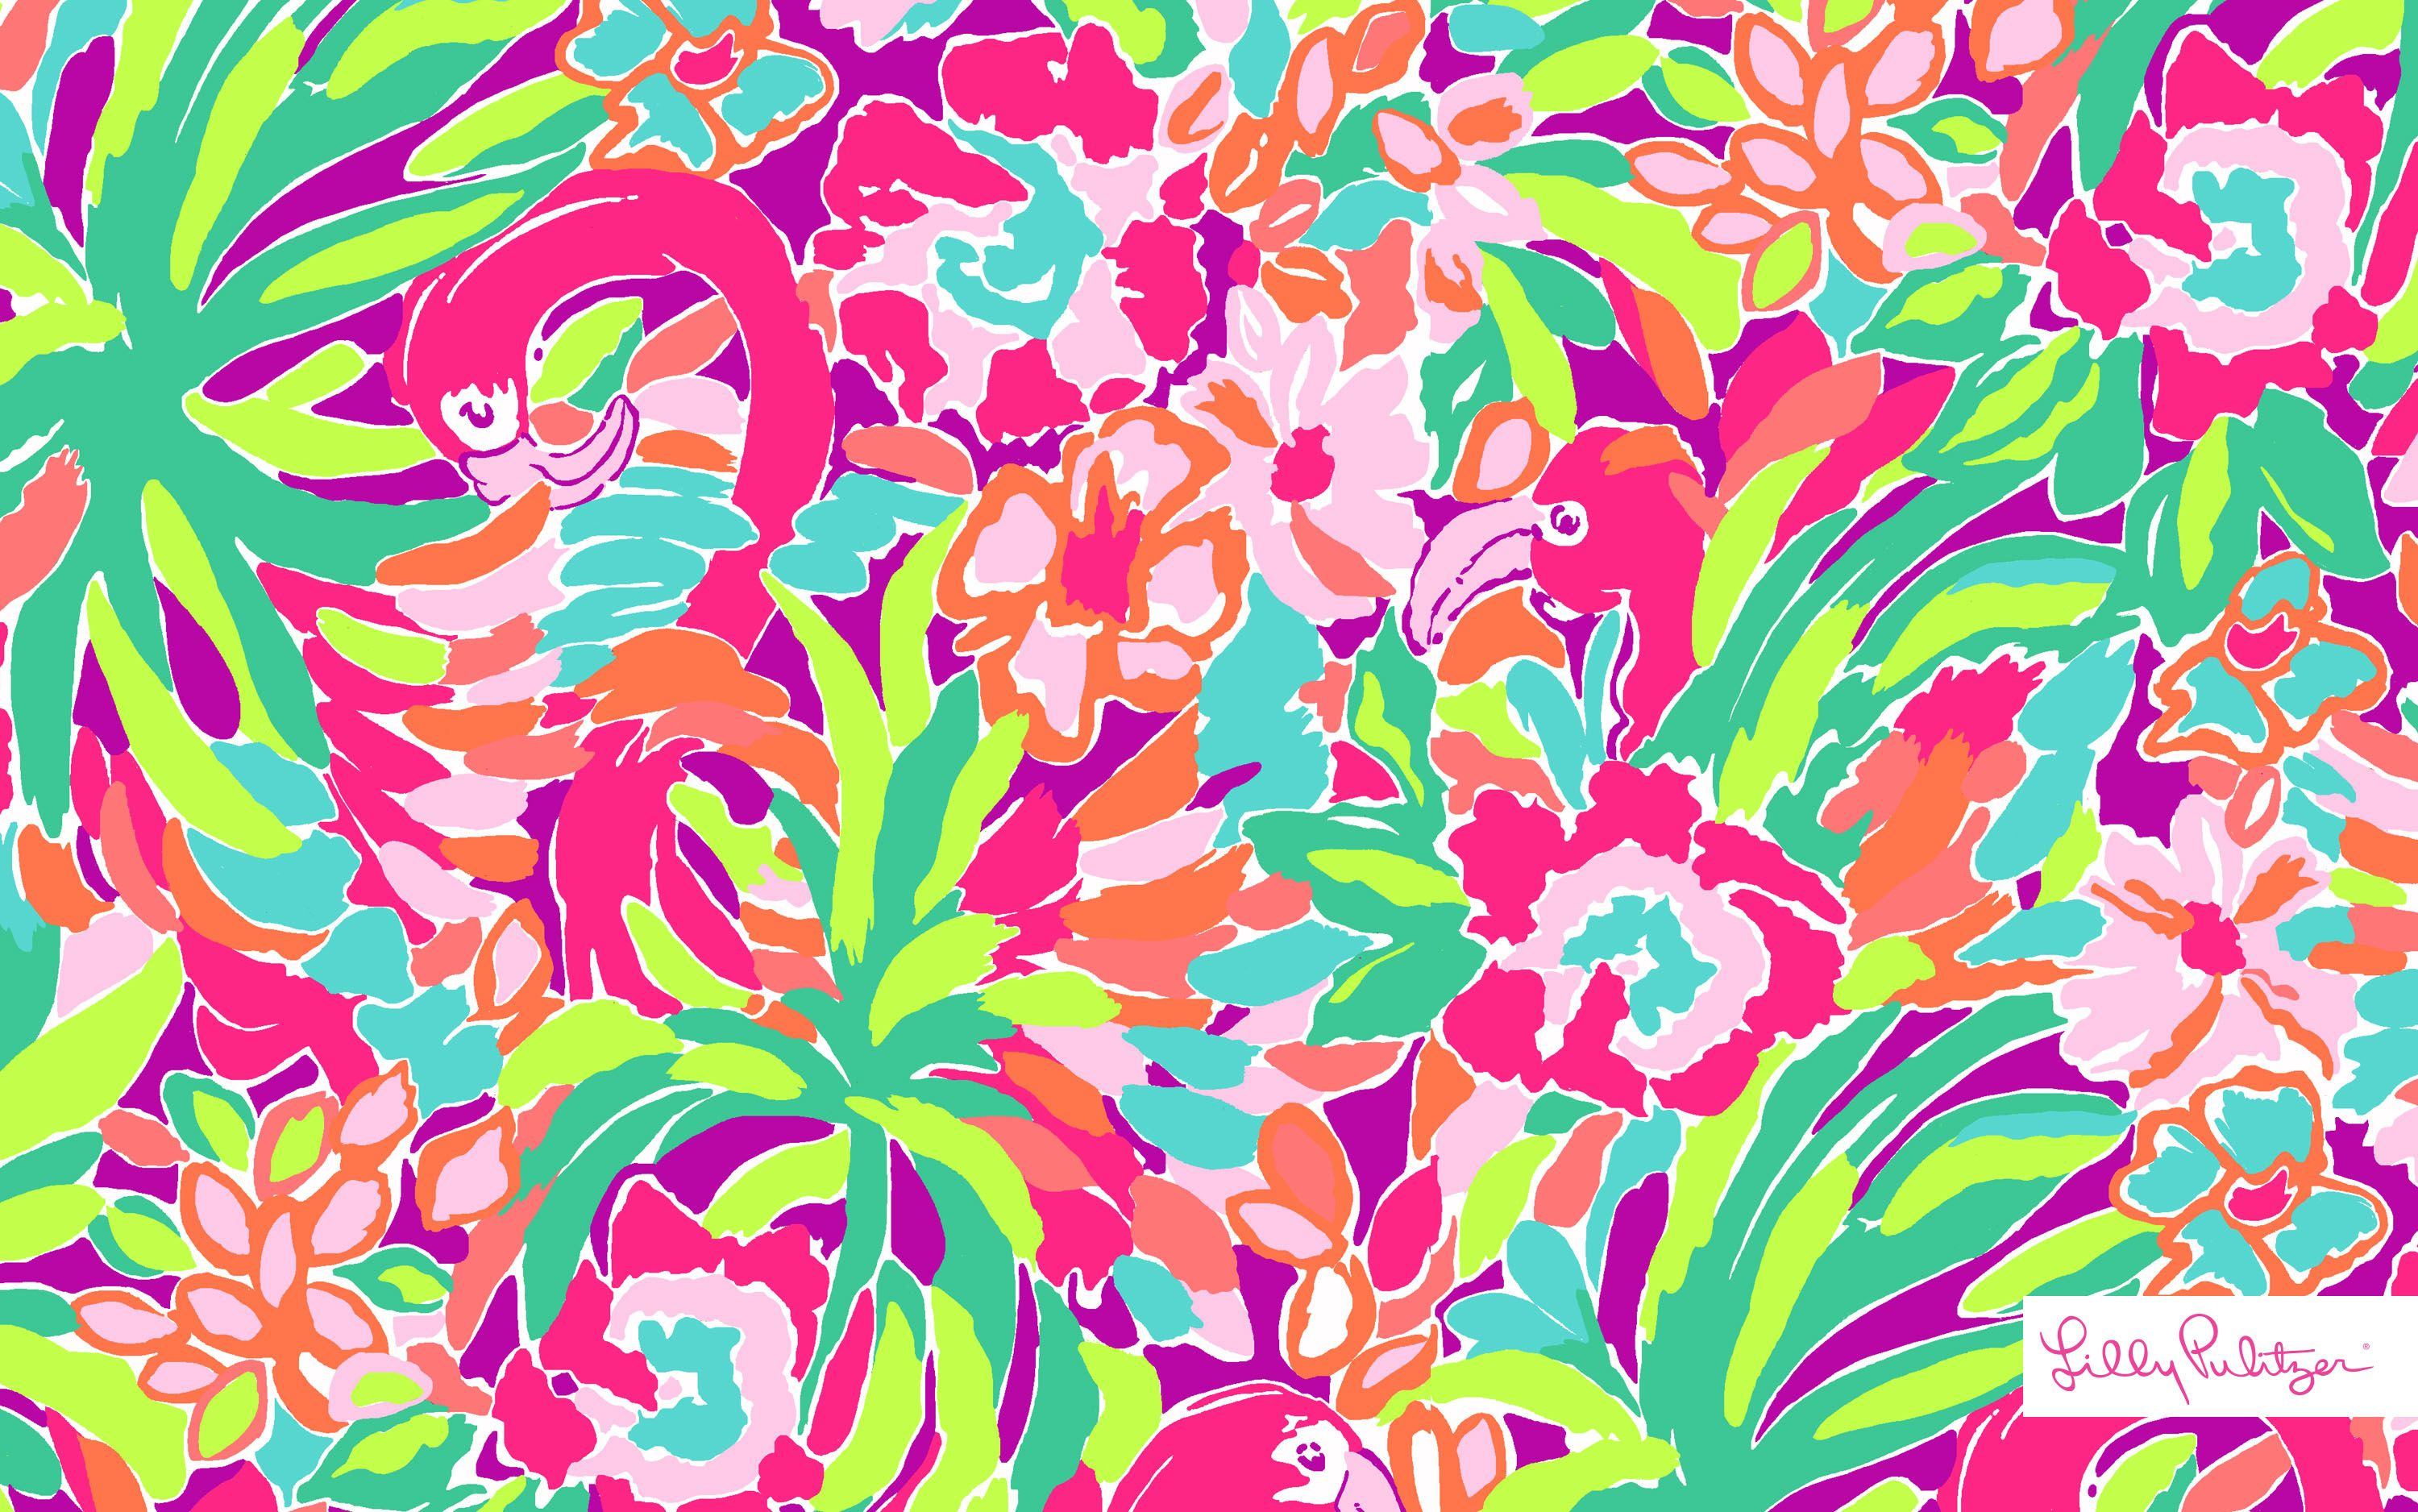 Related Wallpapers From Lilly Pulitzer Anchor Patterns Lilly Pulitzer Prints Prints Lilly Prints